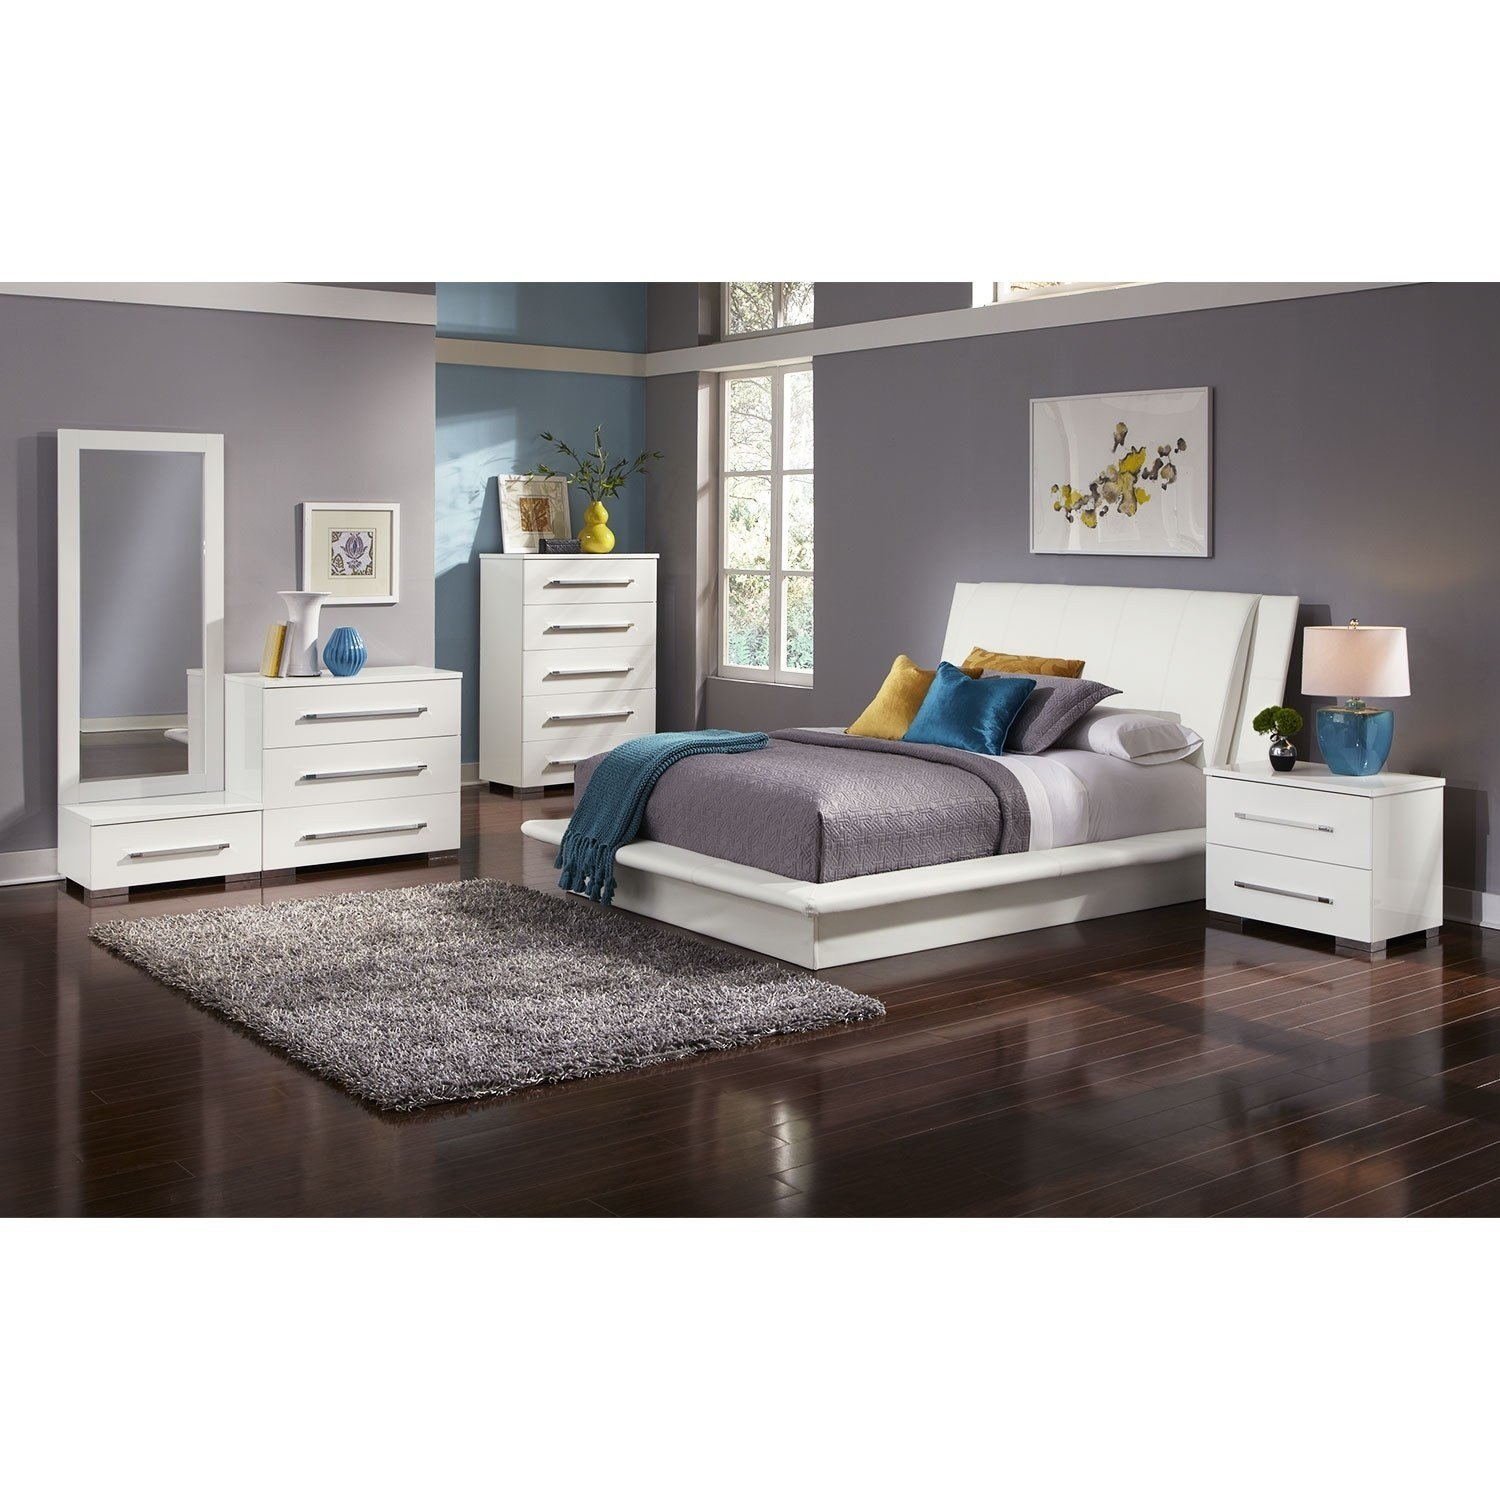 Best Dimora 7 Piece Queen Upholstered Bedroom Set White With Pictures